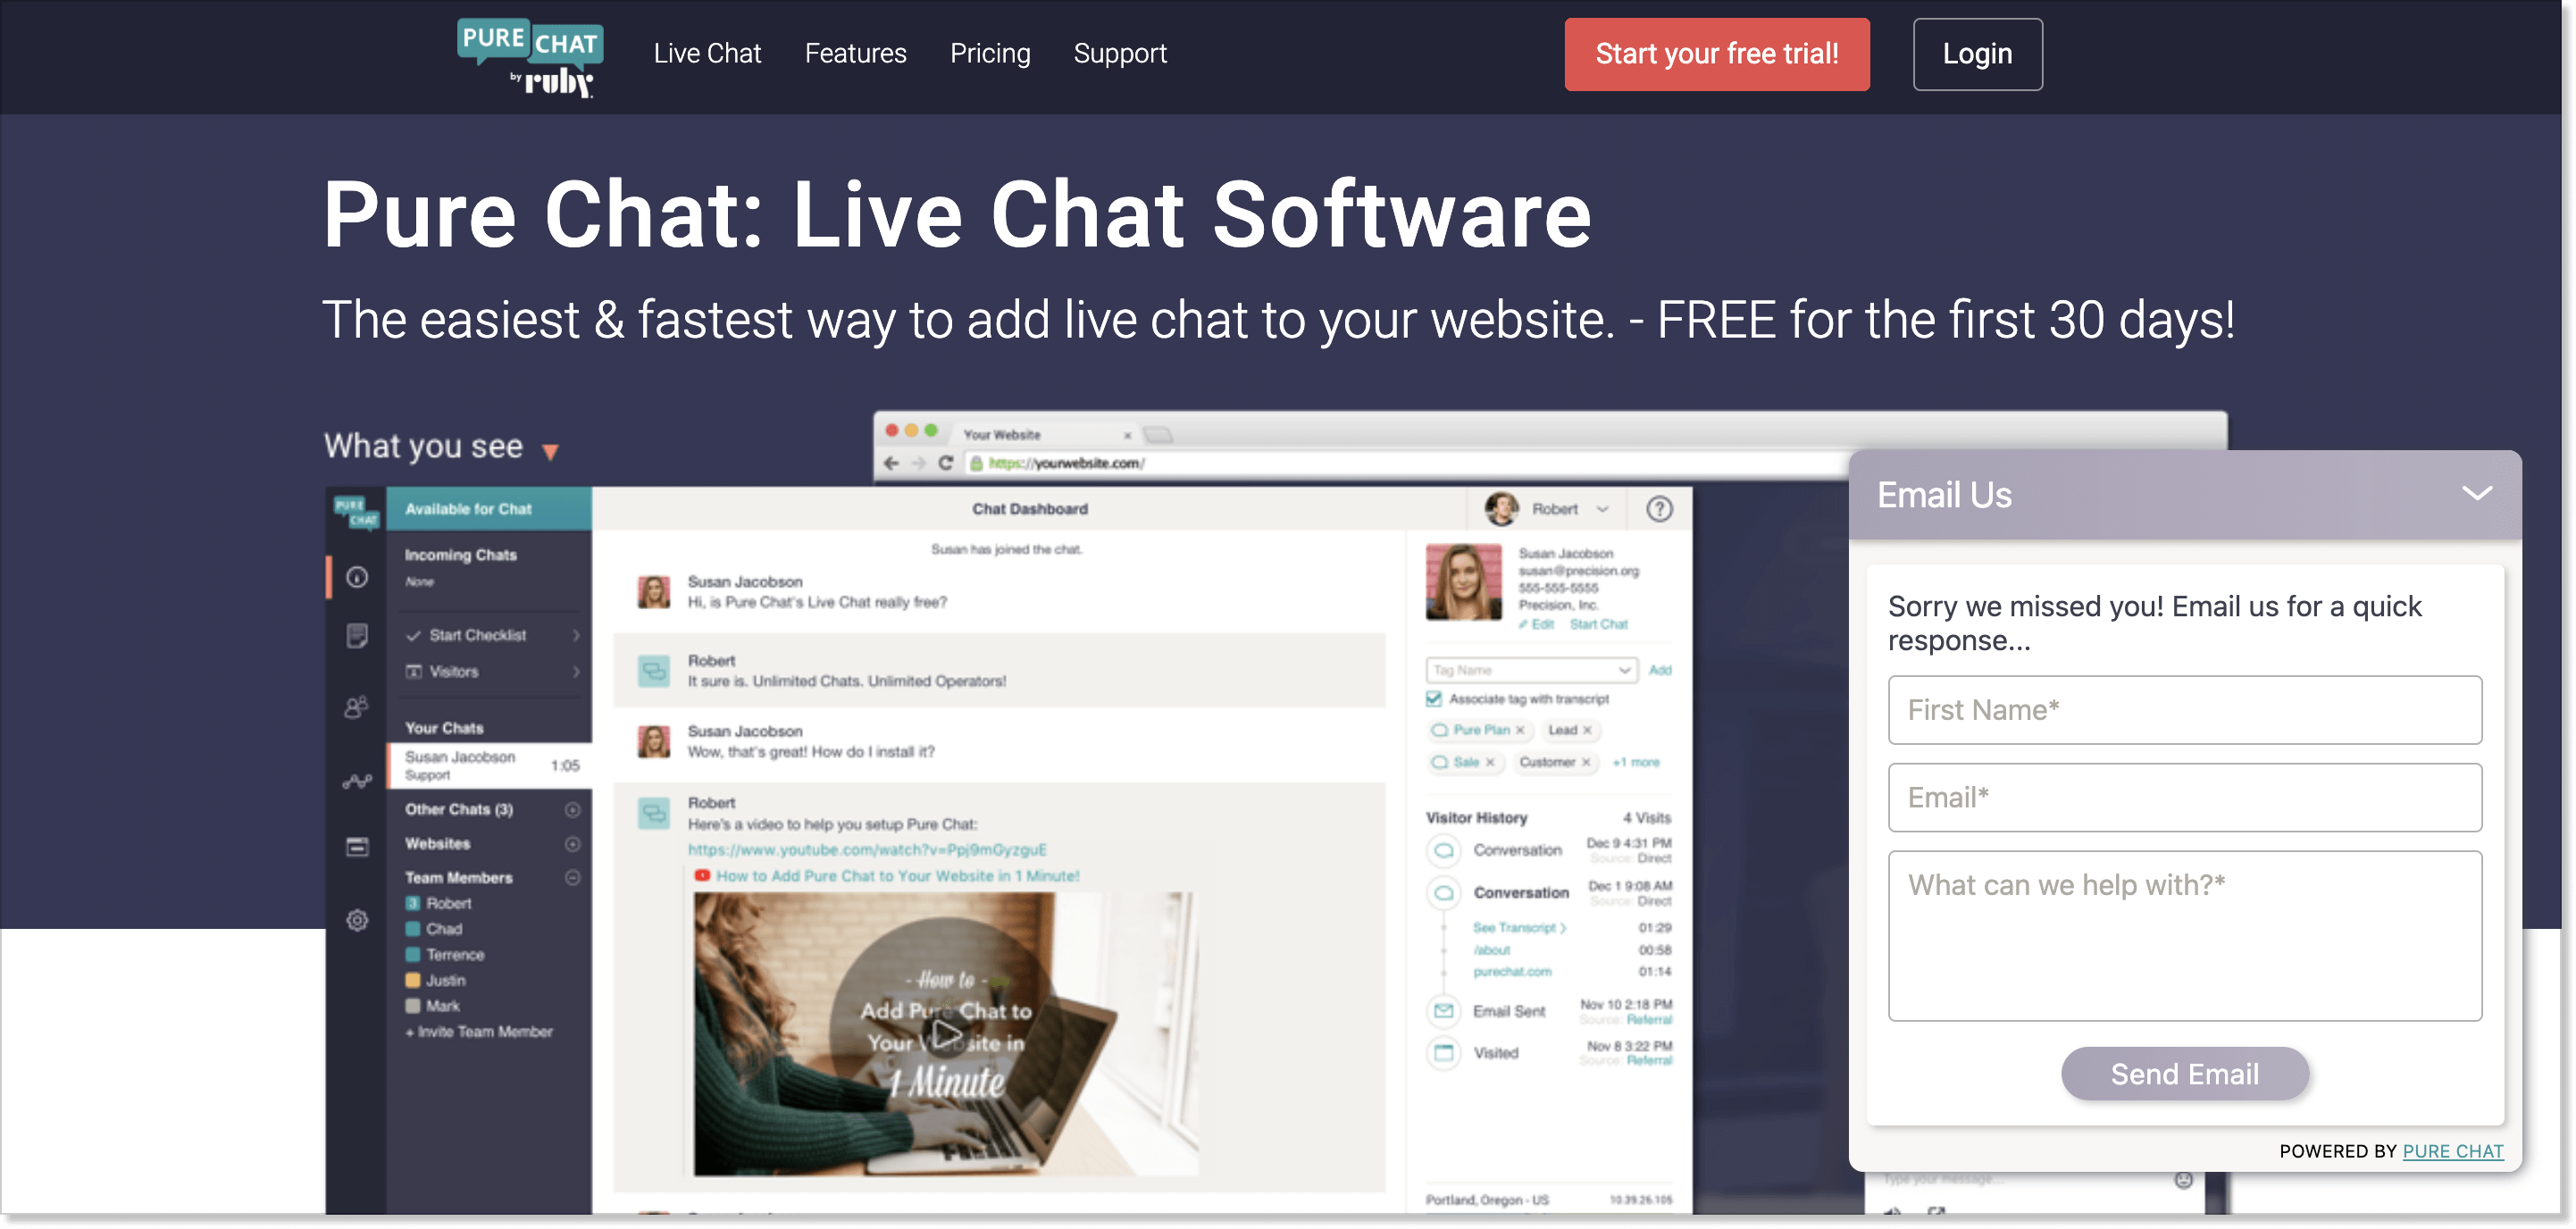 Pure Chat homepage with a live chat widget